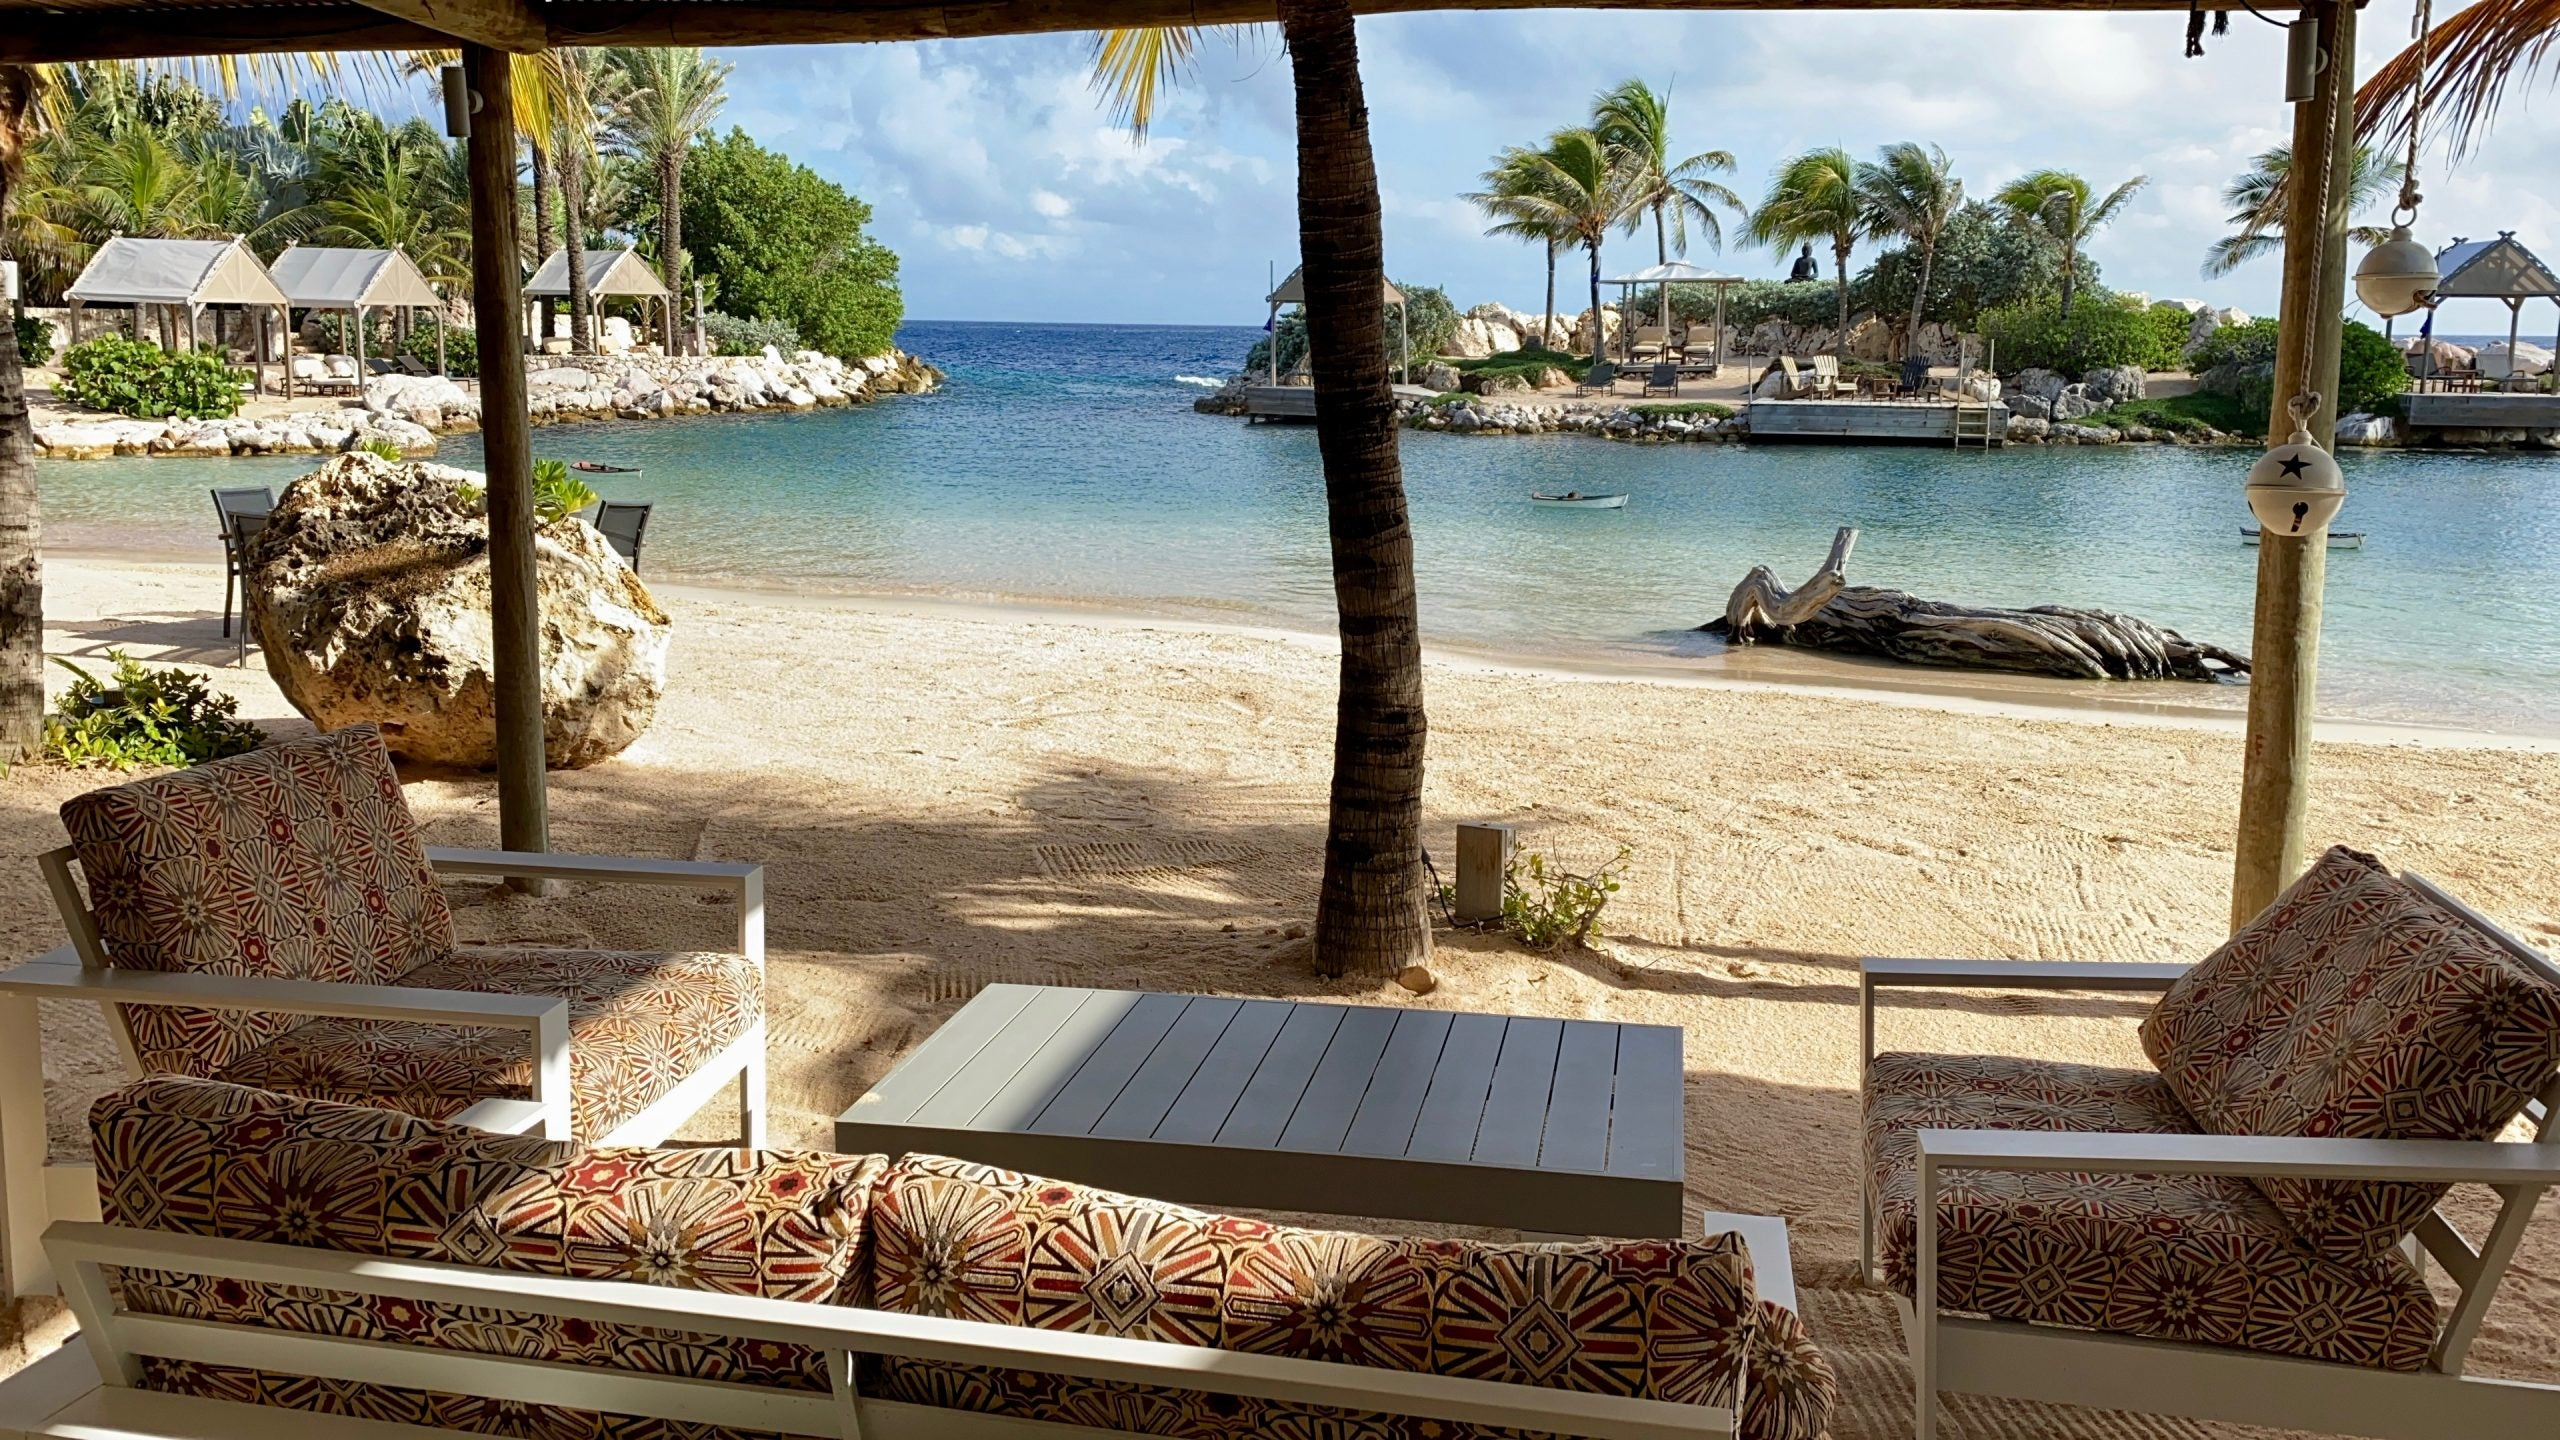 View of Boase Luxury Resort in Curacao